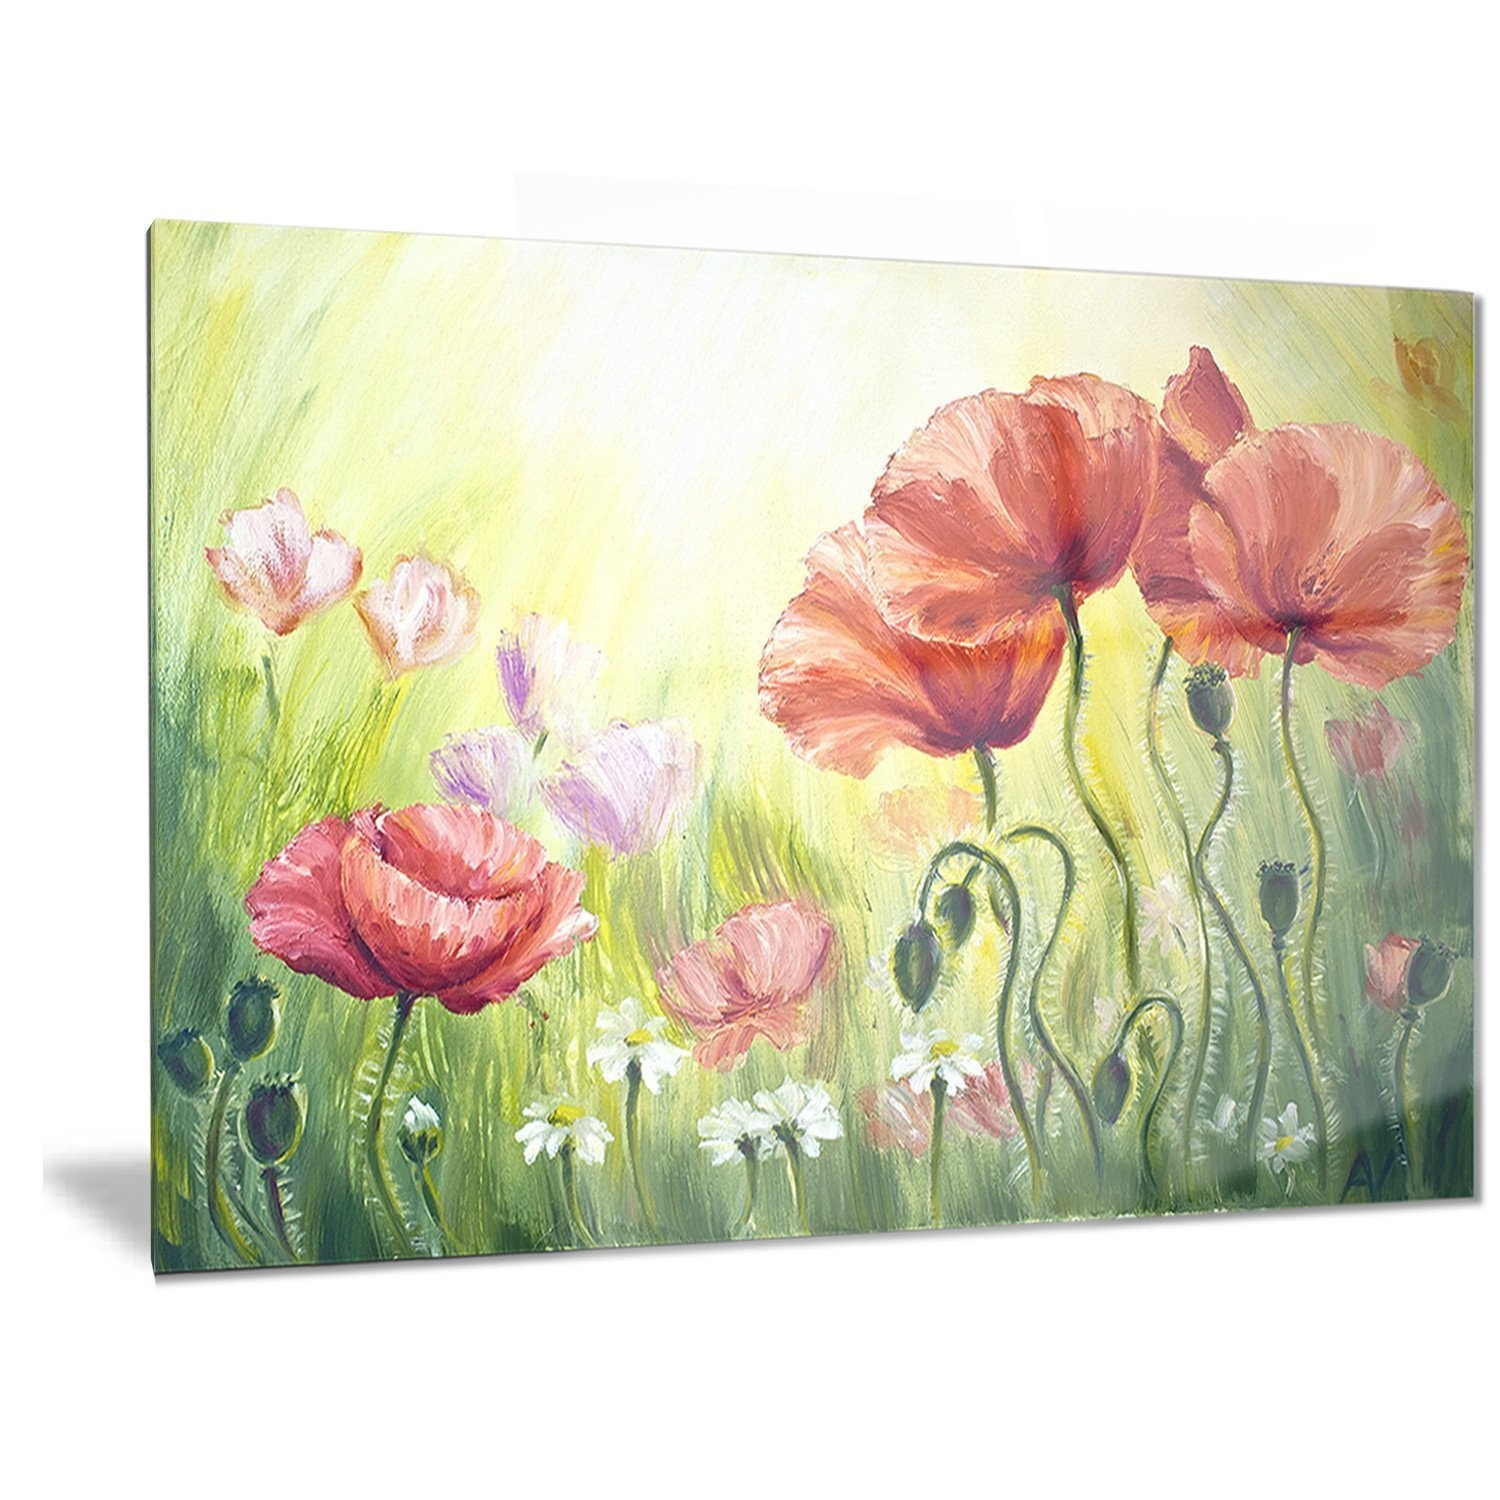 Luxury Poppy Wall Art Metal Sketch - Wall Art Collections ...